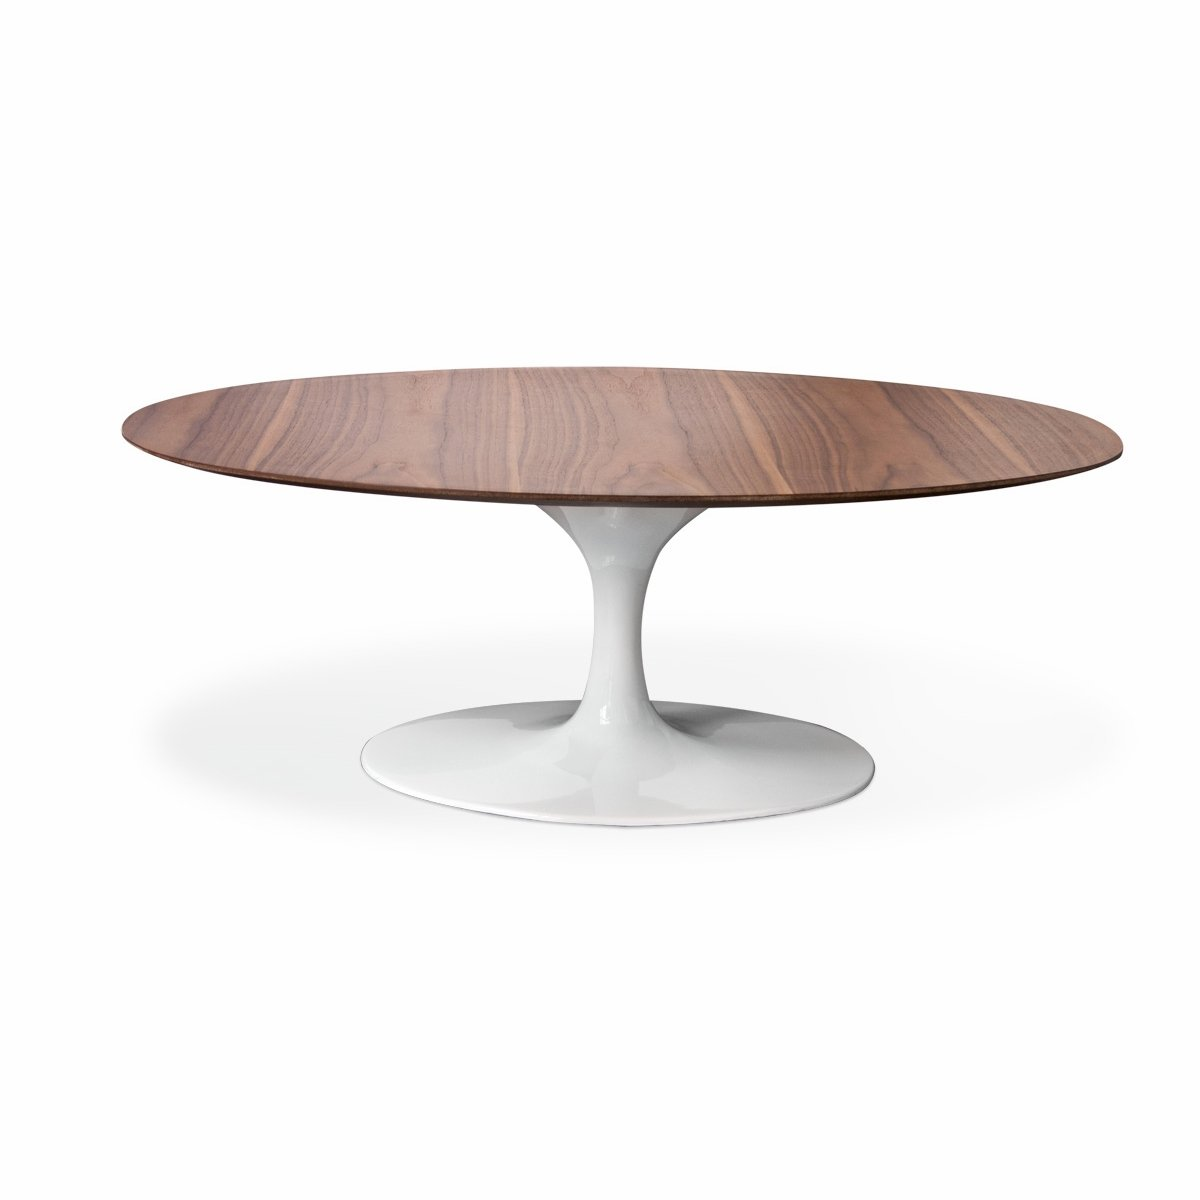 Buying A New Saarinen Coffee Table For Your Home